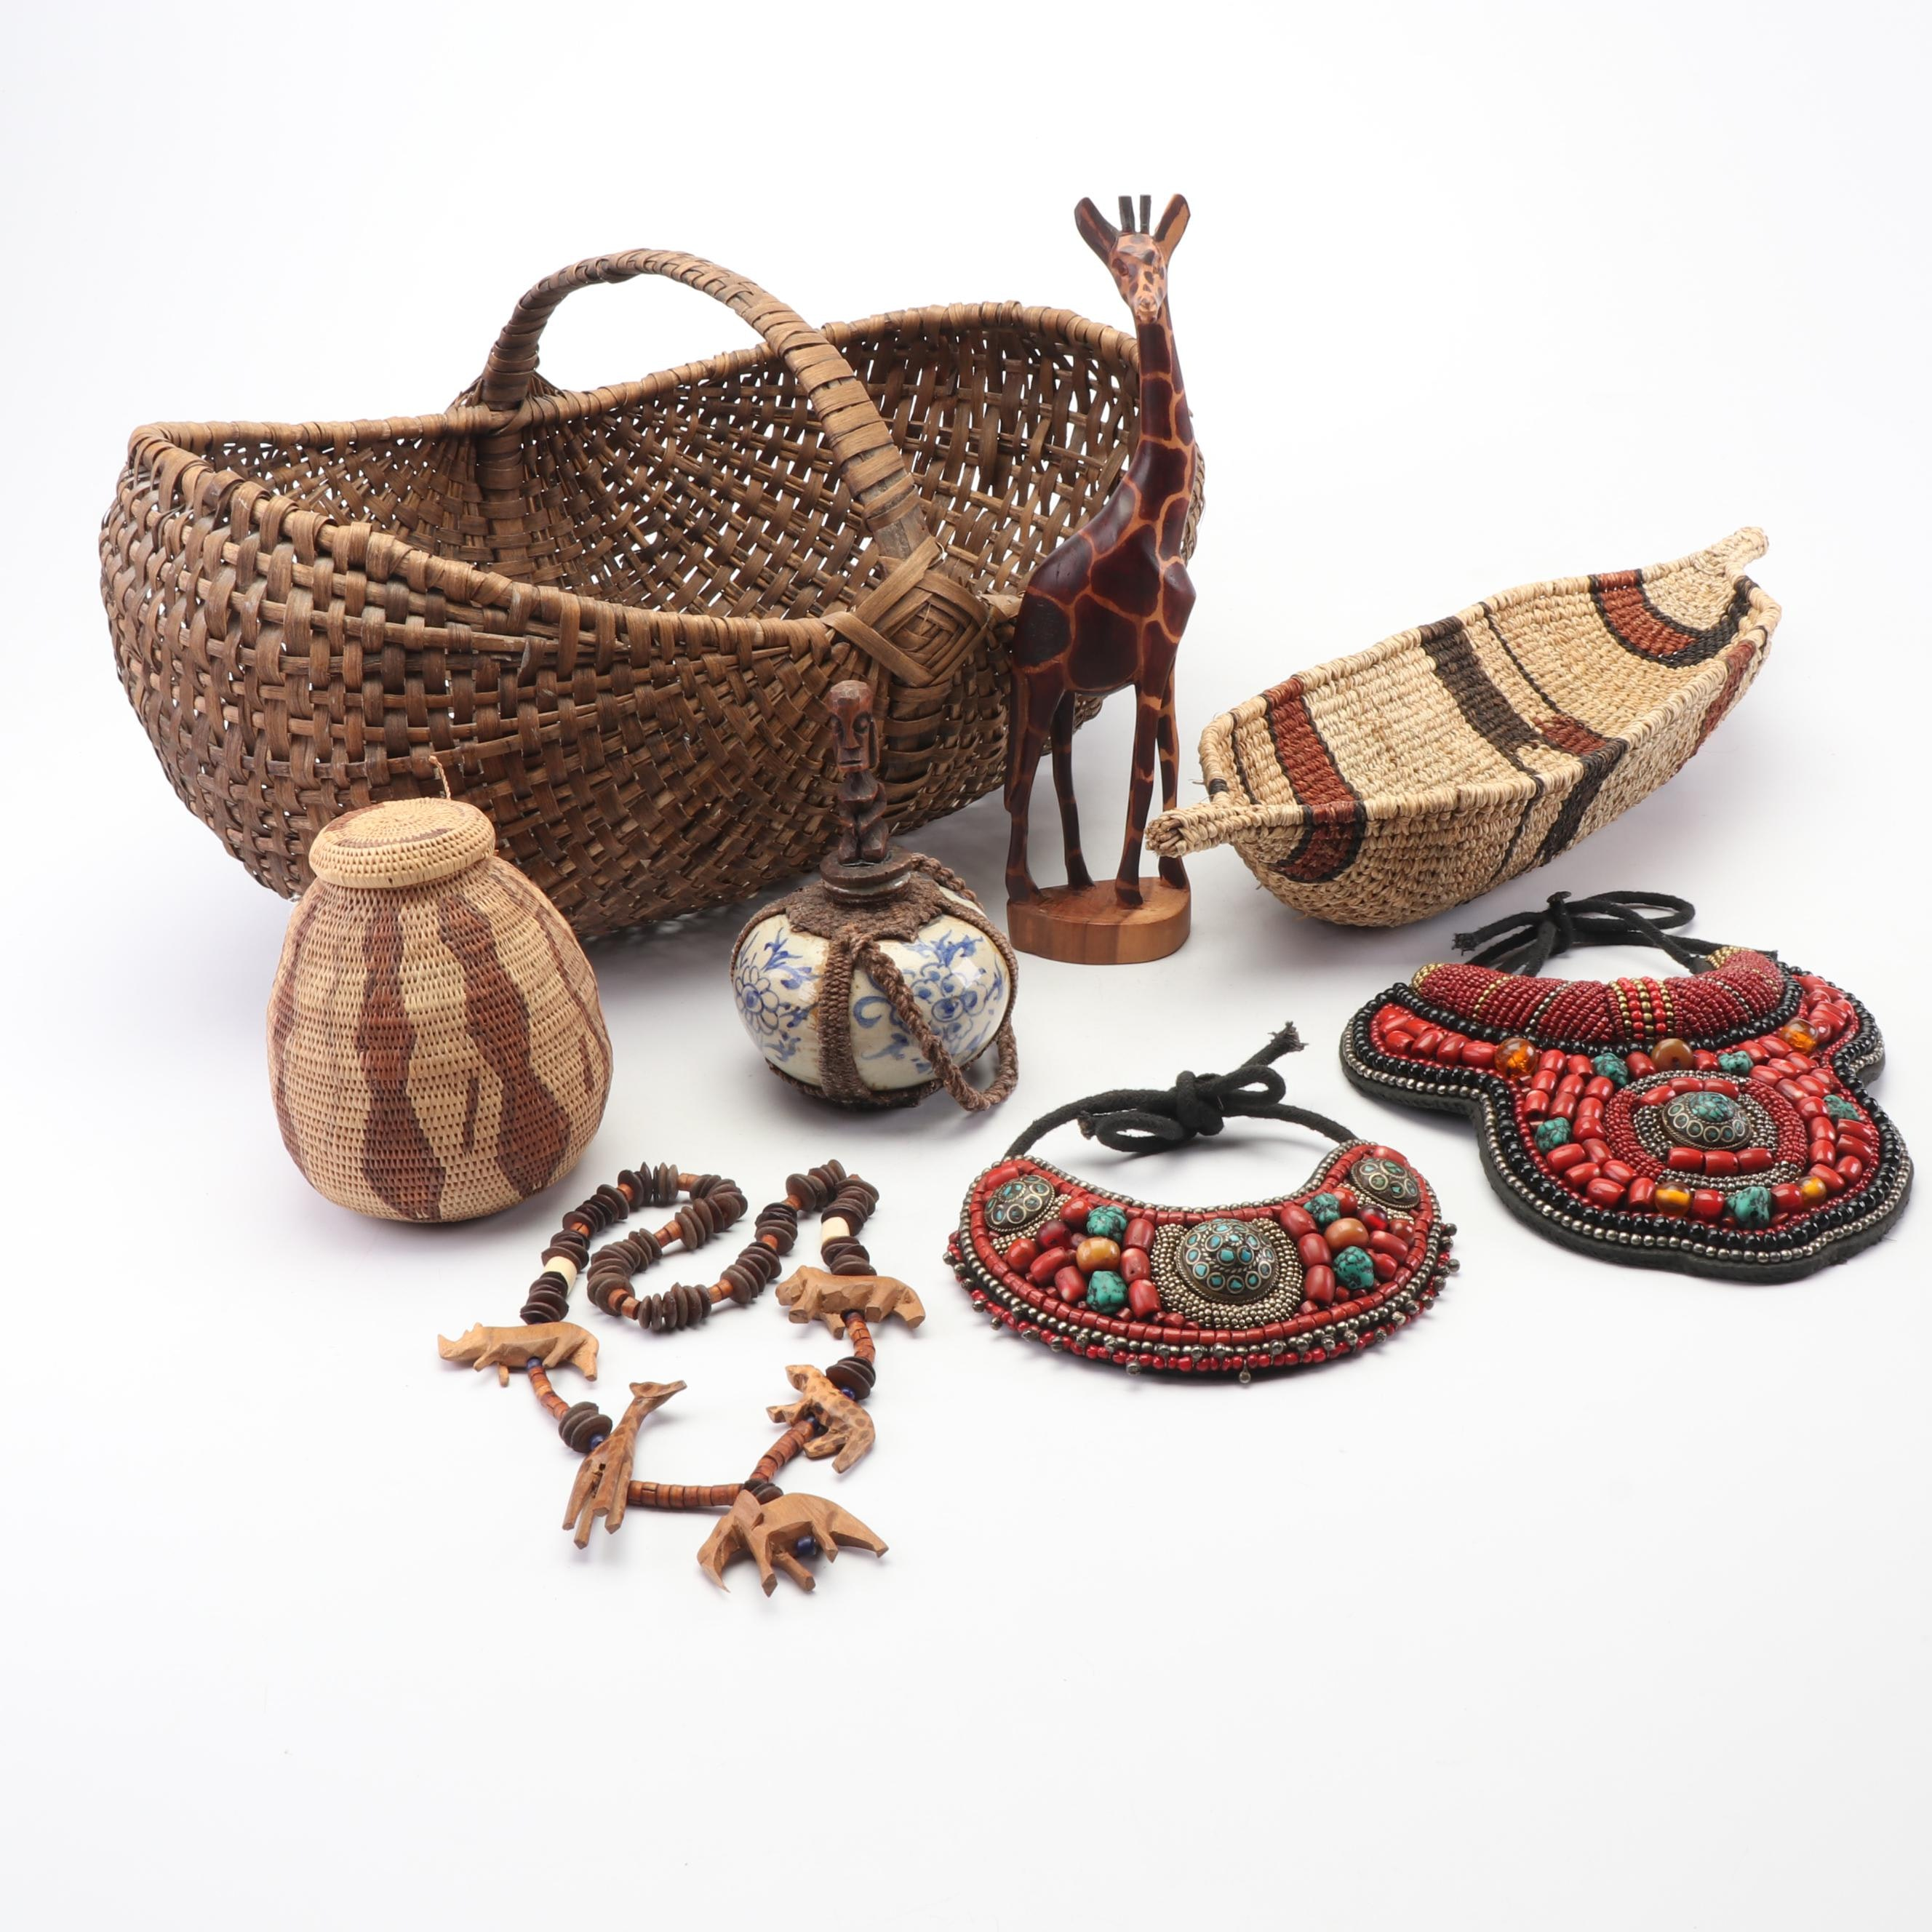 Beaded Bib Necklaces, Baskets, and Carved Wooden Decor